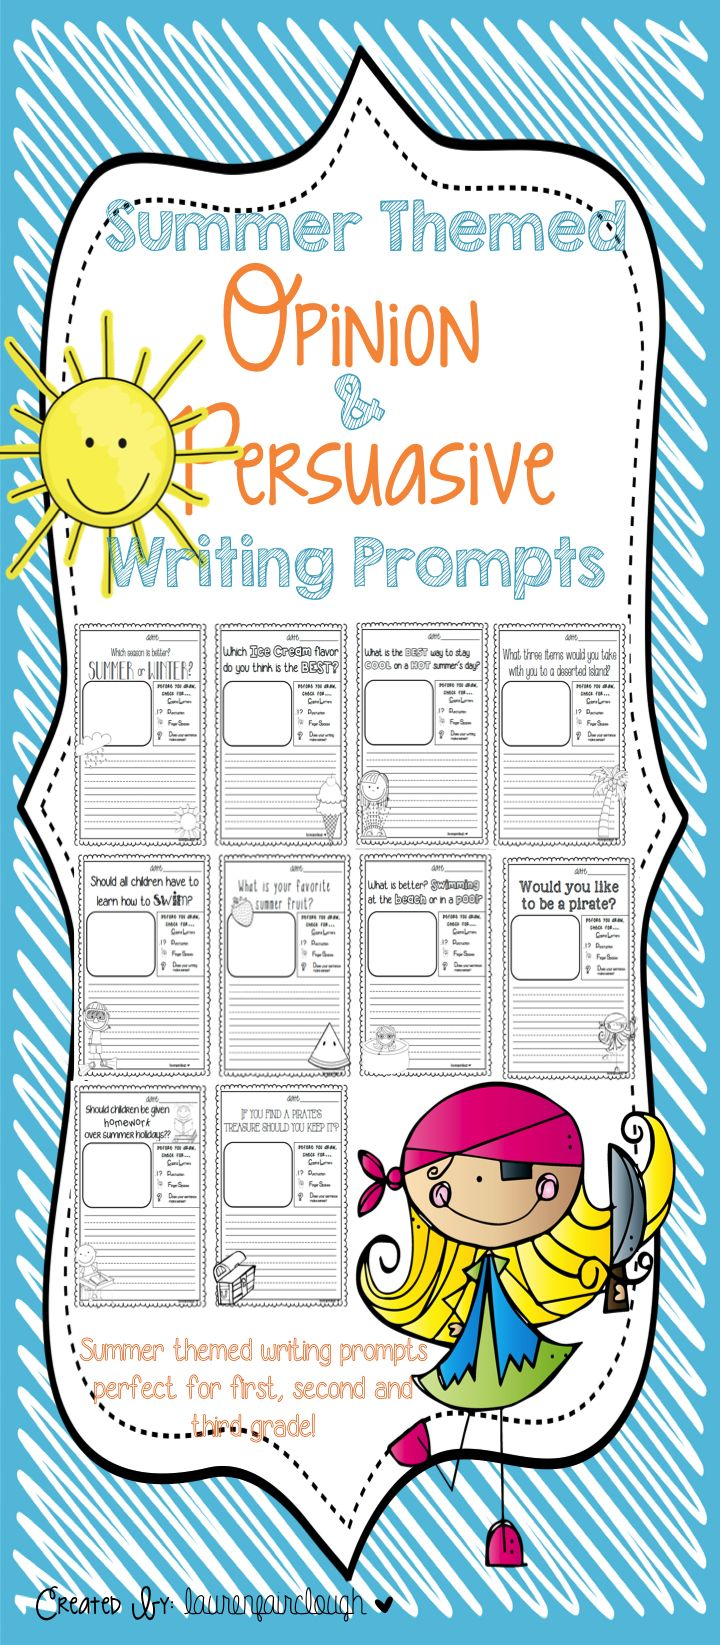 17 best ideas about persuasive writing prompts summer themed opinion and persuasive writing prompts